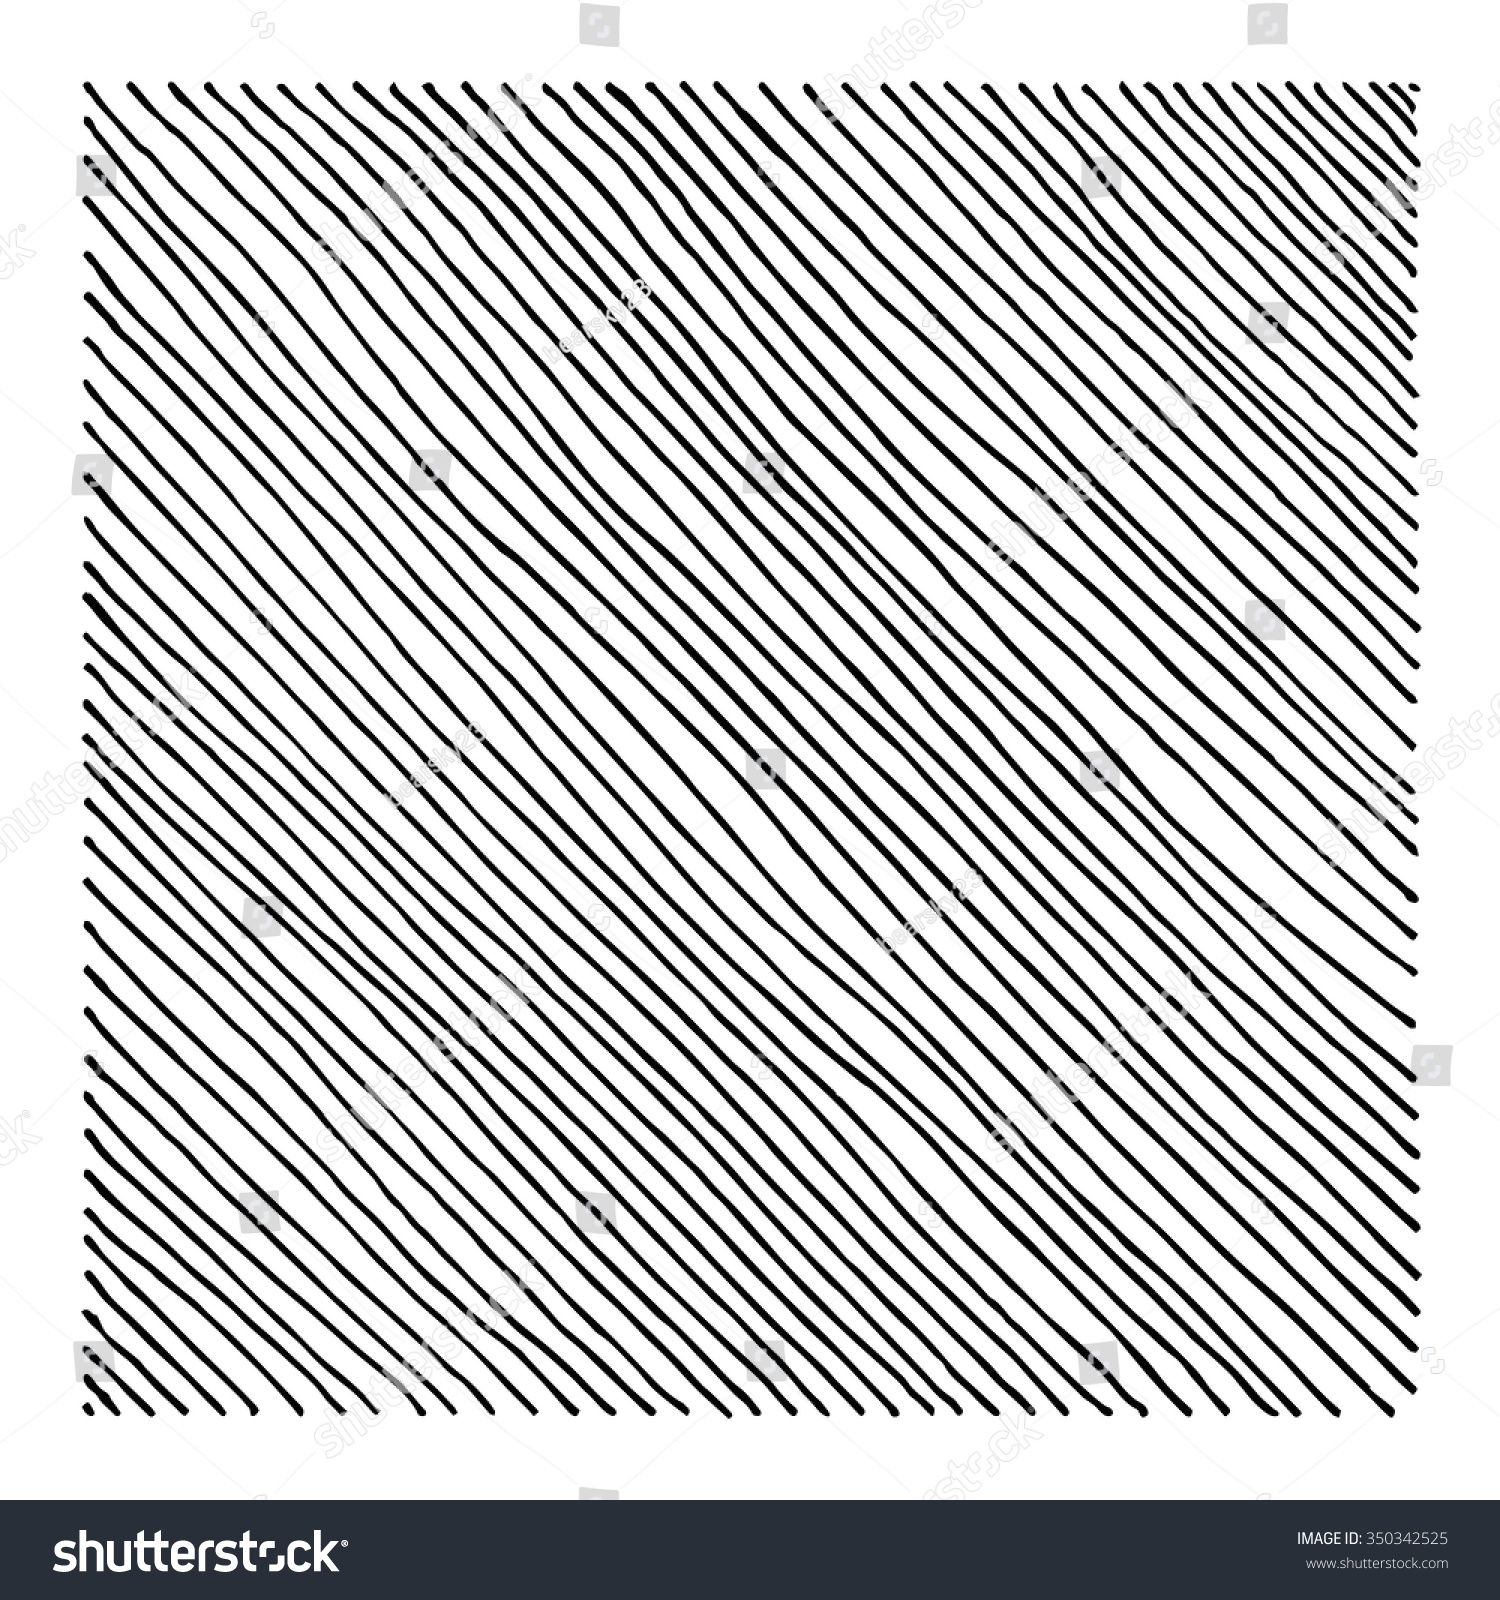 Drawing Lines In Html : Hand drawn straight black diagonal lines stock vector